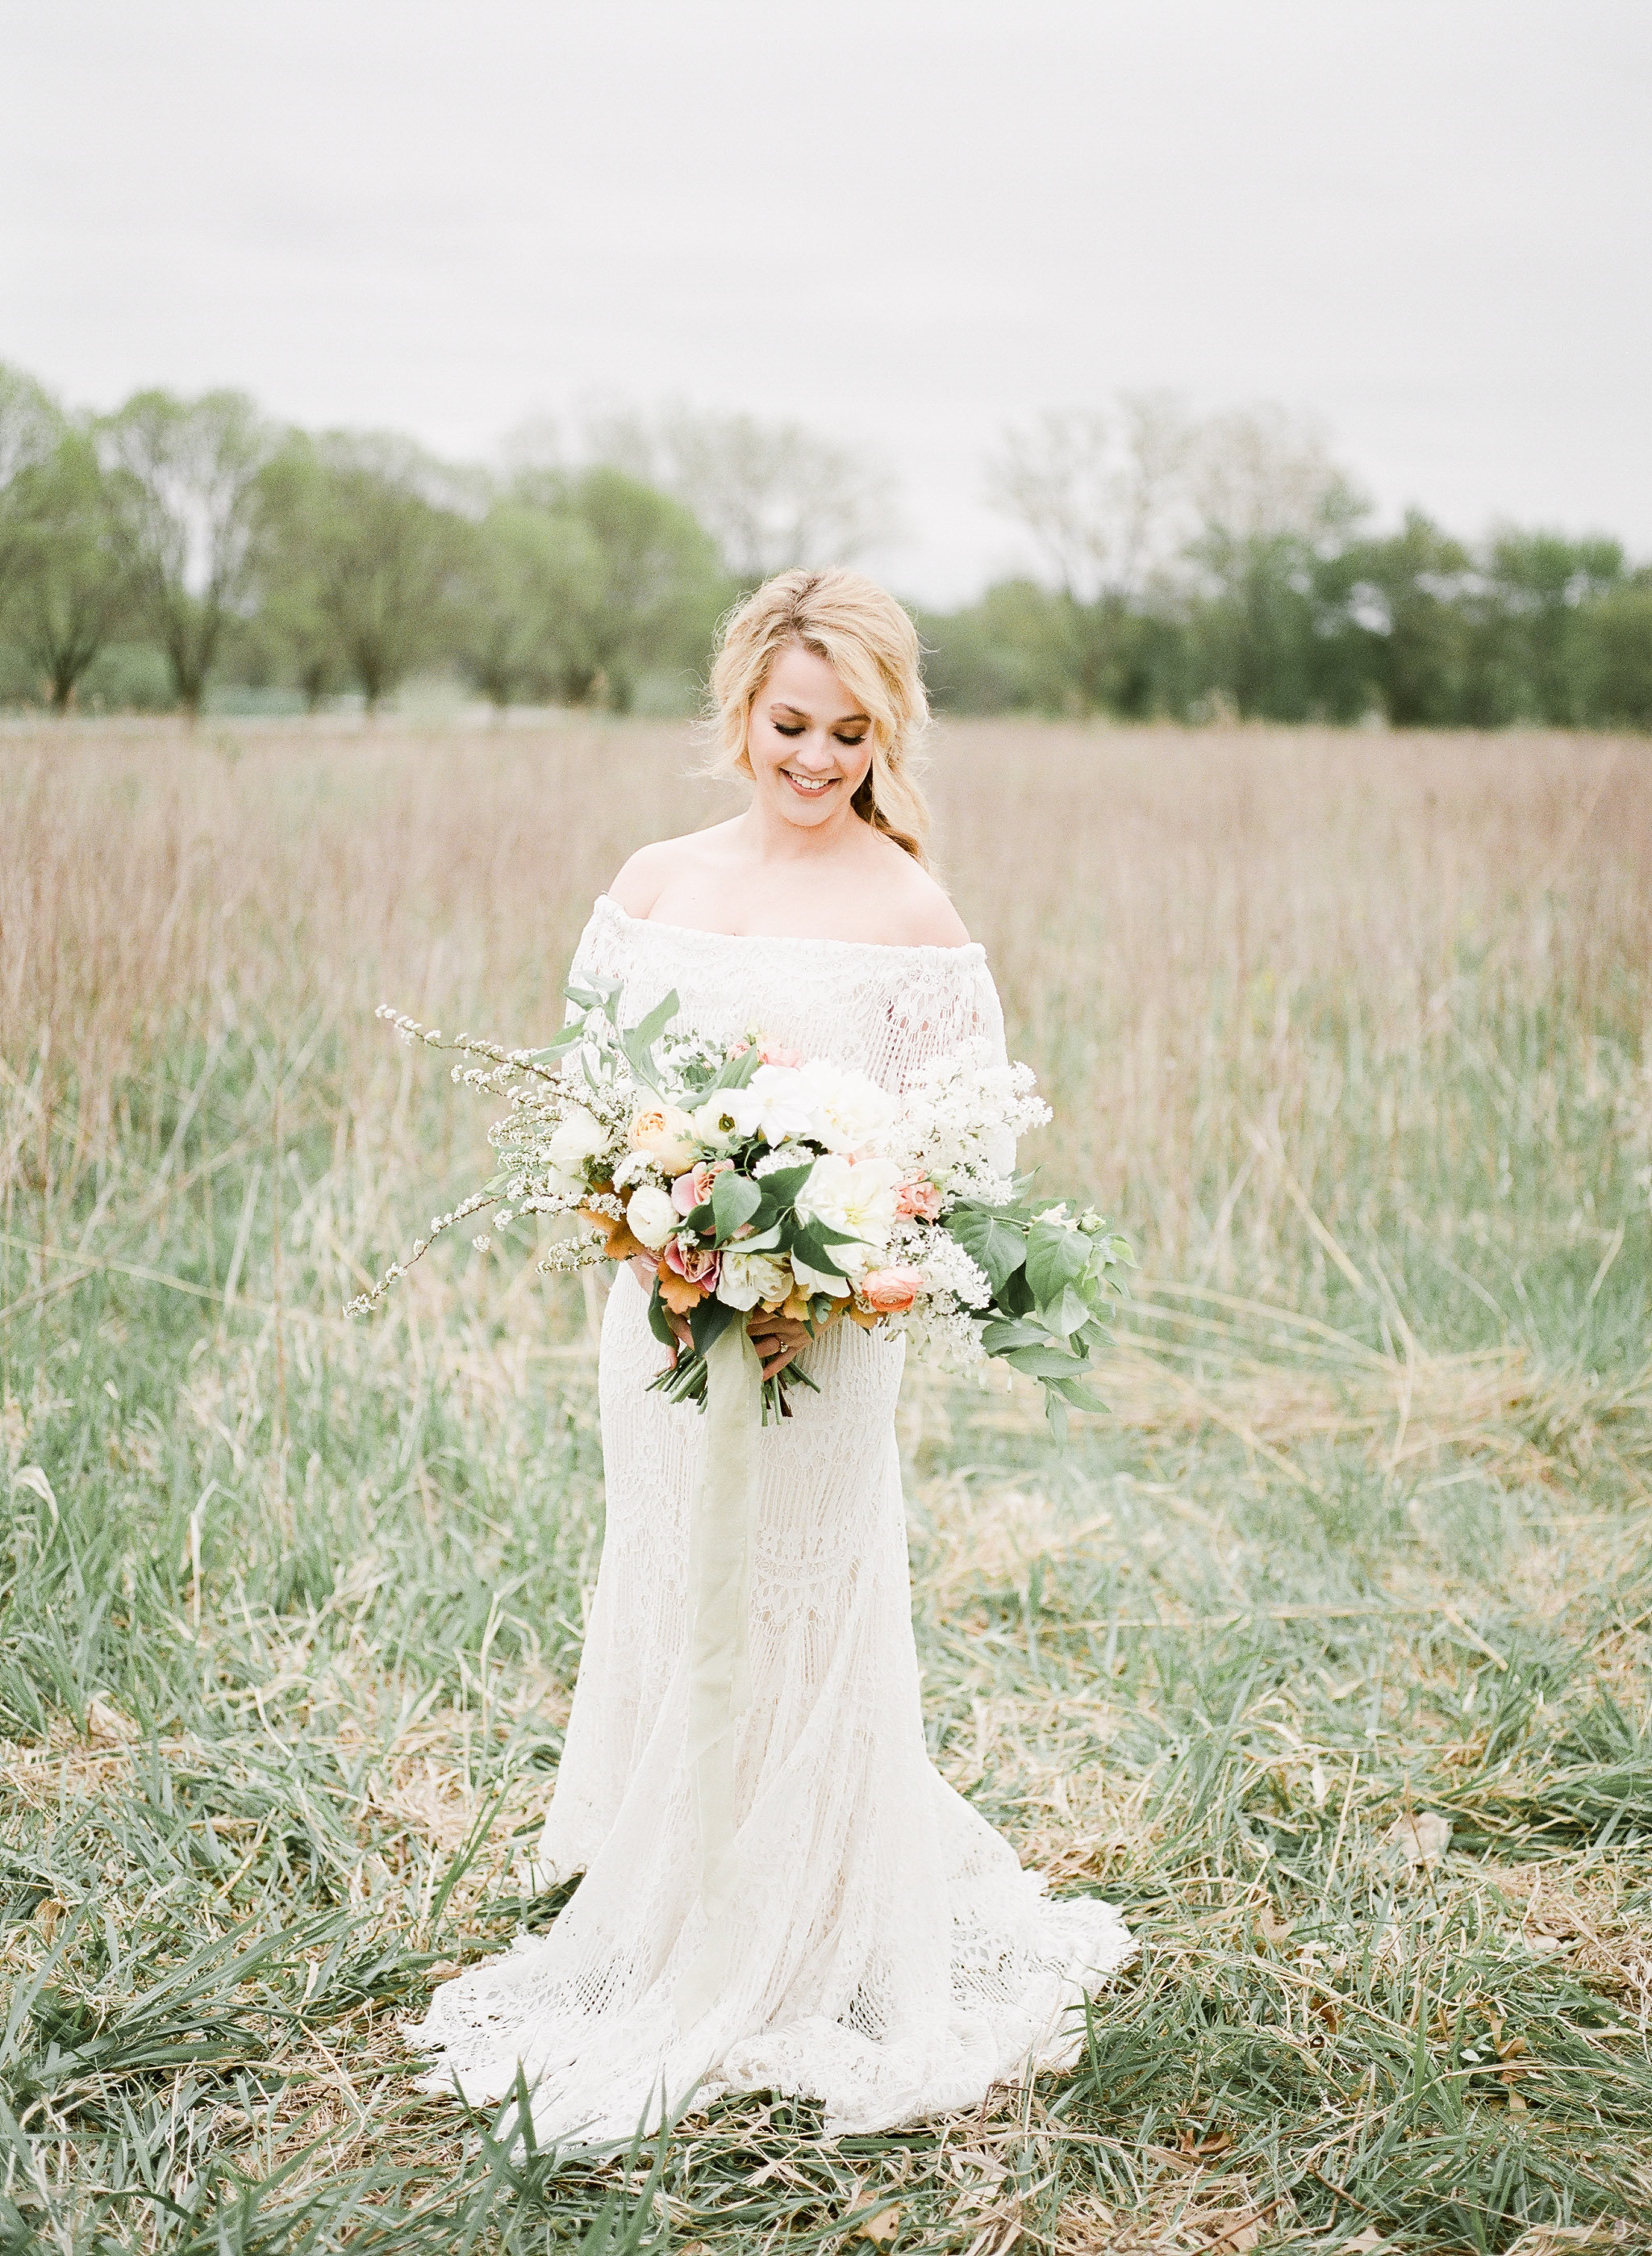 Farm to Table | Farm Wedding | Farm Elopement | Country Wedding | Ivory+Bliss | Photography Workshop | Fine Art Wedding Blog | Joy Wed | Ivory & Green Wedding